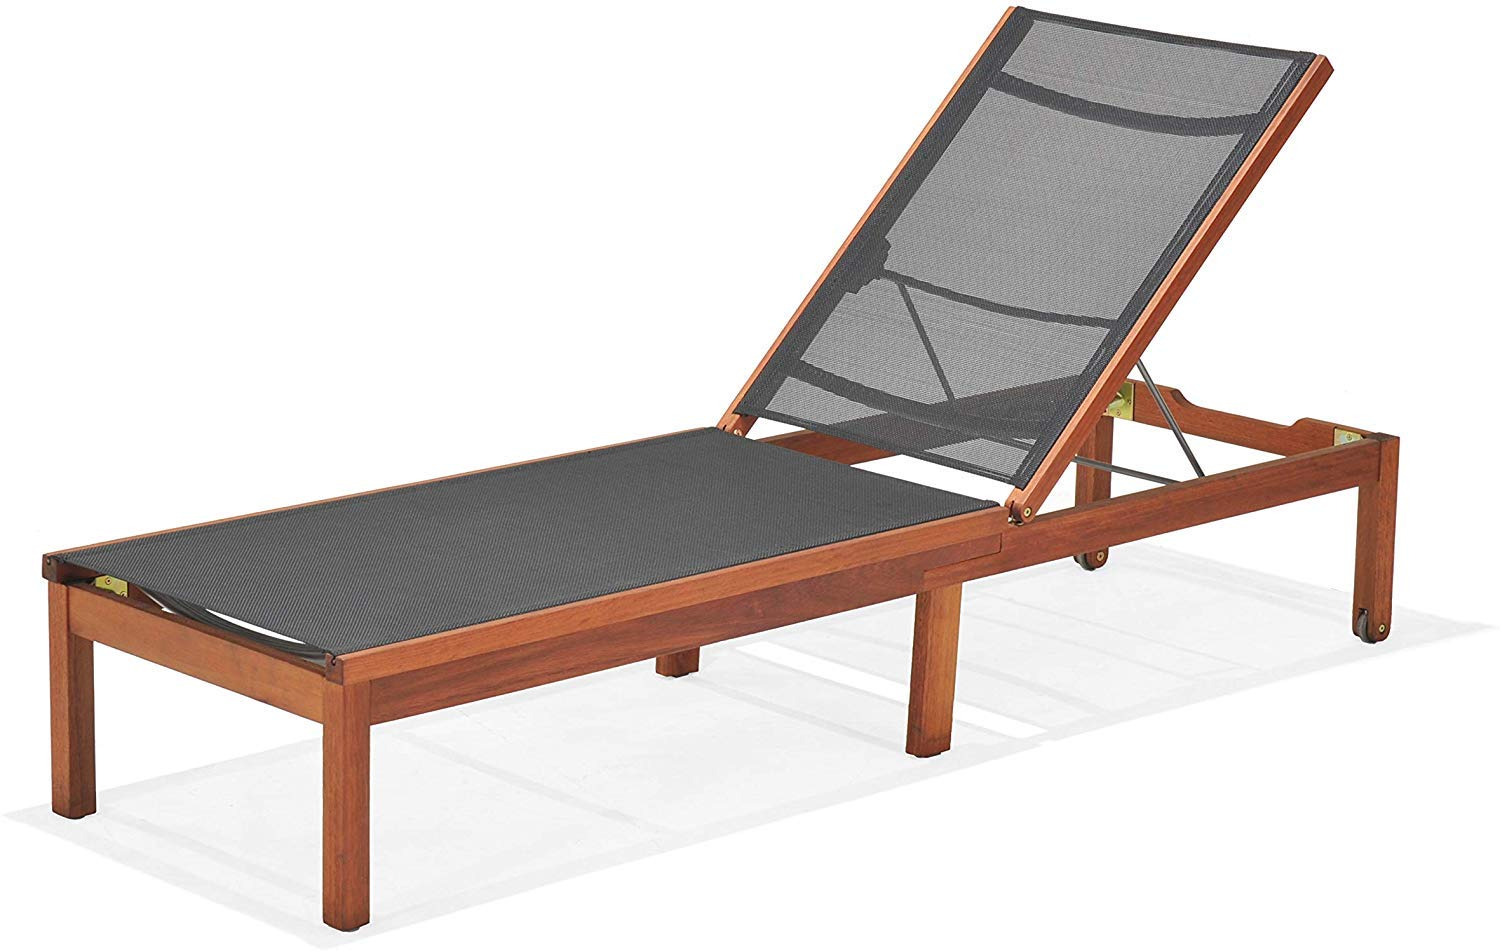 Amazonia Chaise 1-Piece Patio Sling Lounger | Eucalyptus Wood | Ideal for Outdoors and Poolside, Black